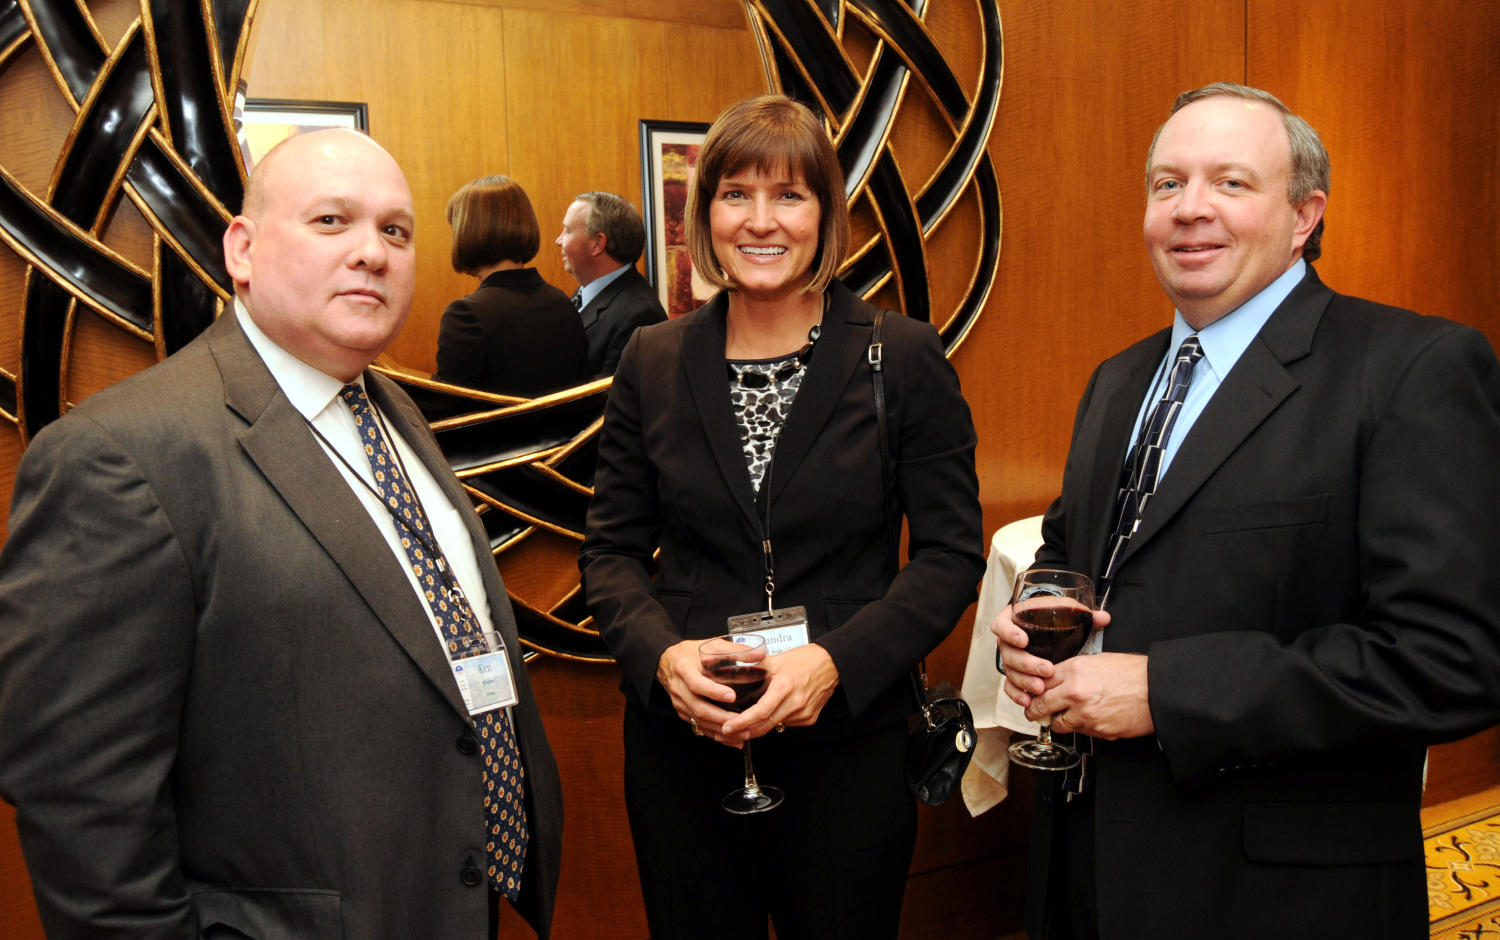 [Ken Whalen and Sandra Aven], Photograph of Ken Whalen (left), Sandra Aven (center) and an unidentified third man standing together in front of a large wall mirror and talking when their picture was taken during the 2010 Texas Daily Newspaper Association annual meeting held in Houston, Texas.,